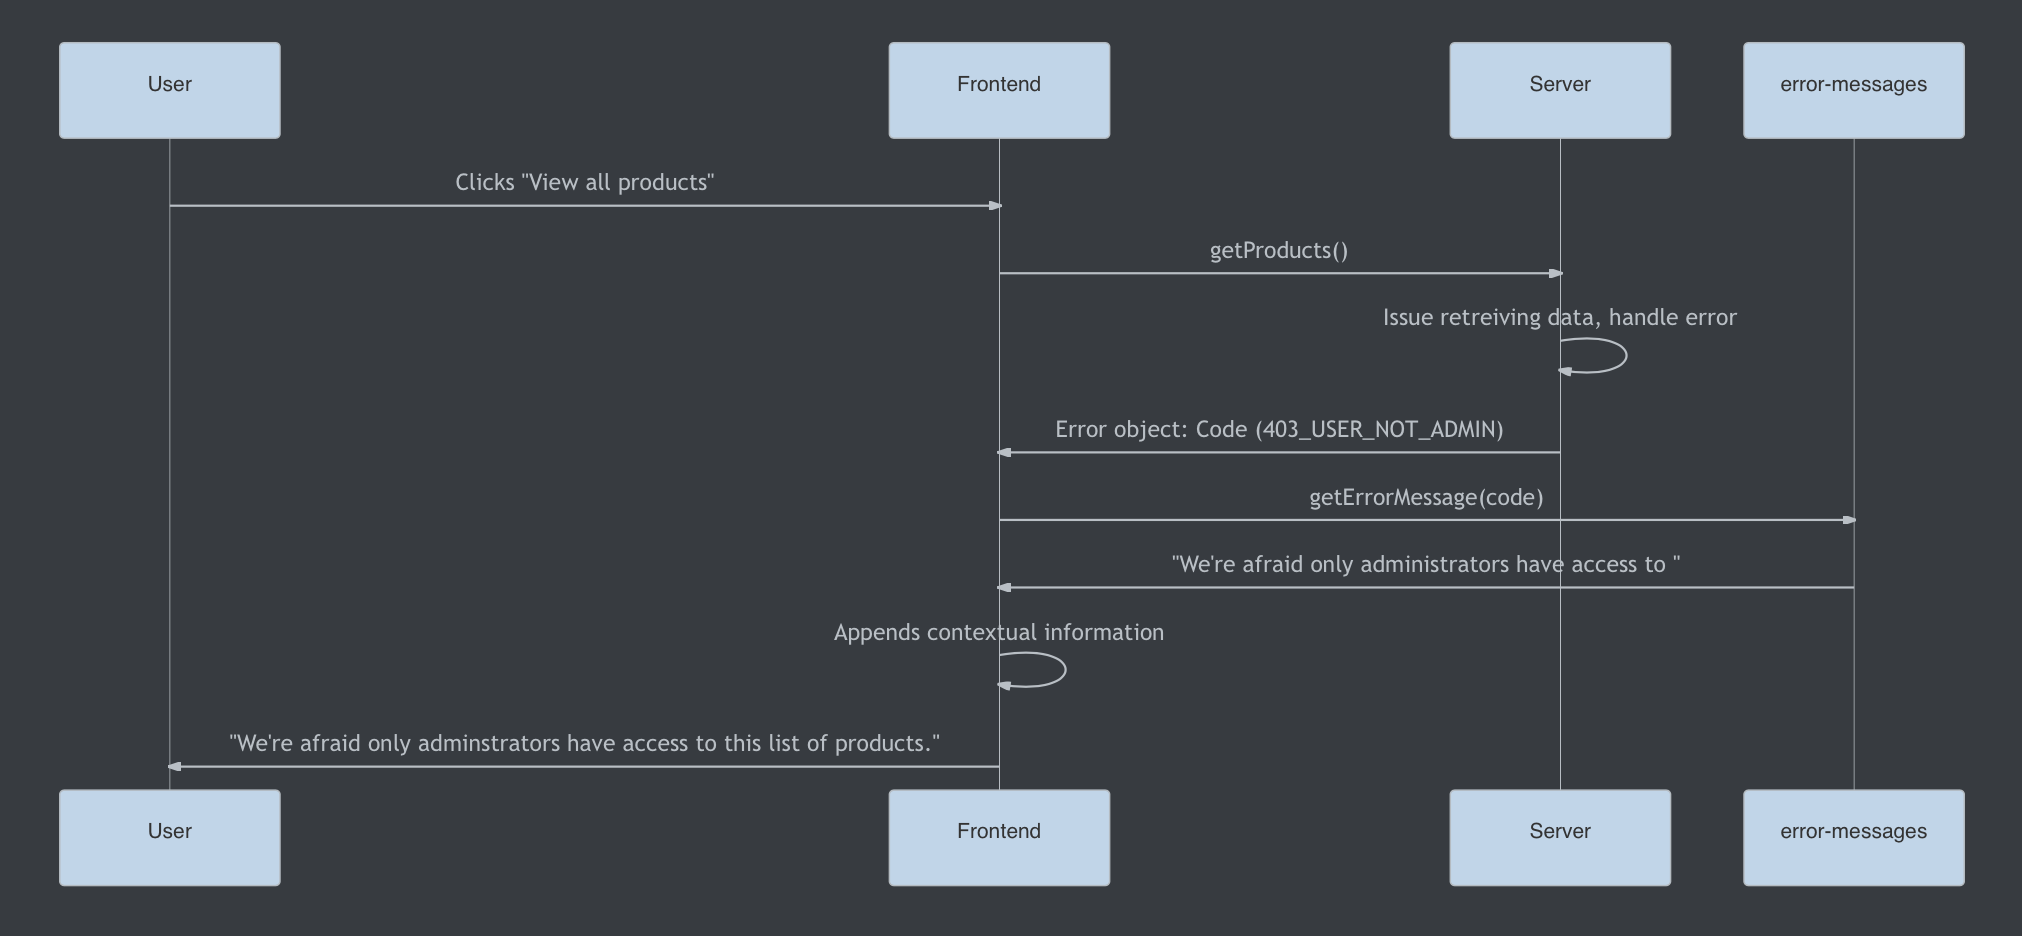 A sequence diagram showing the process of displaying a sane error message.